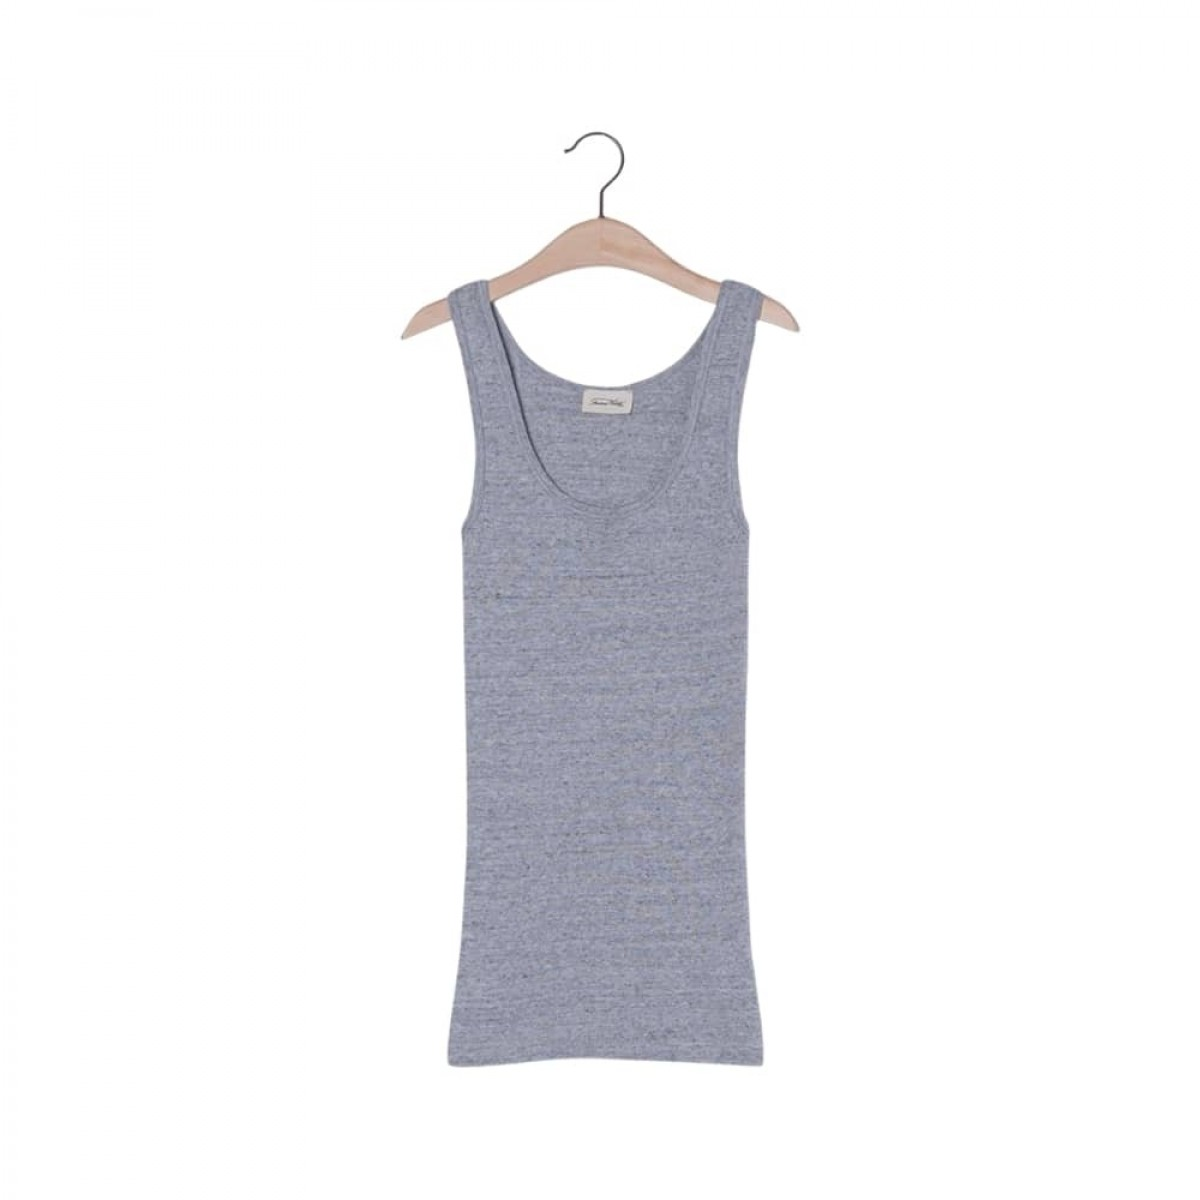 nooby top - heather grey - front